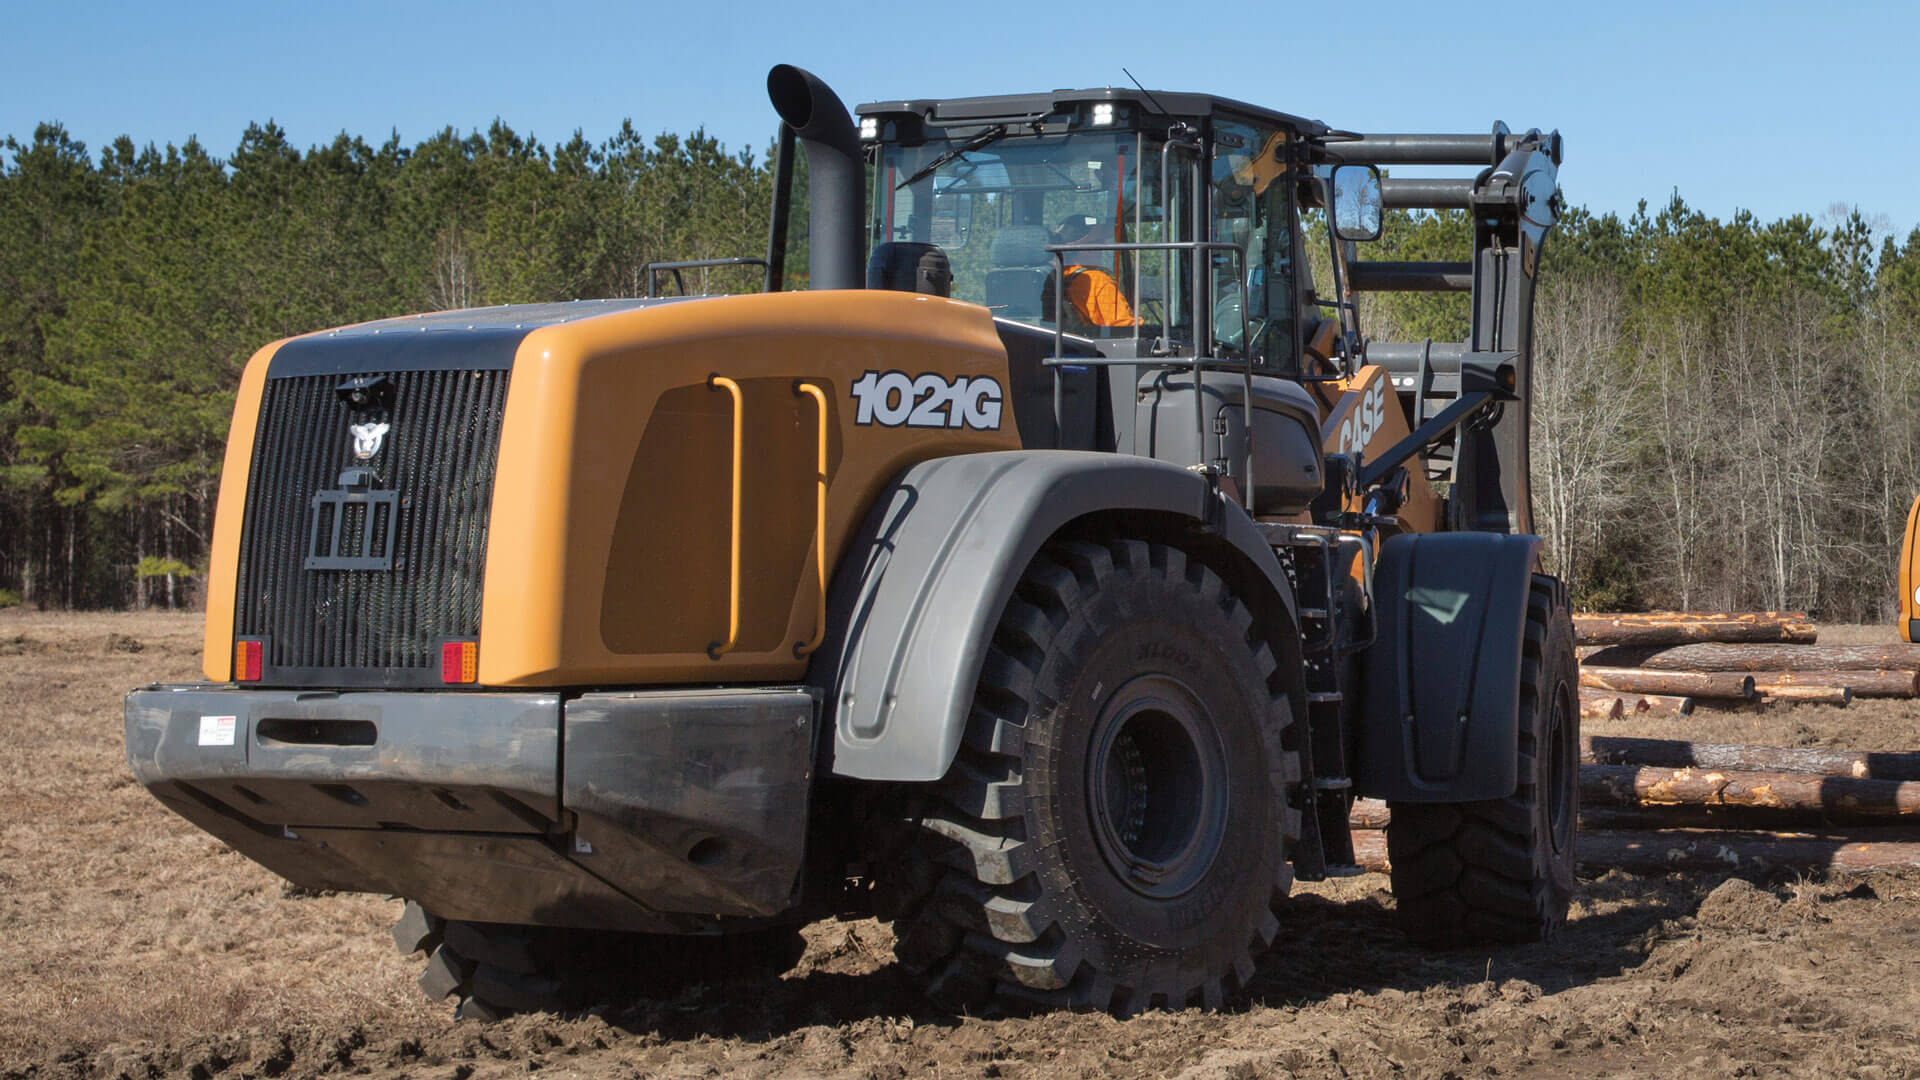 CASE 1021G Wheel Loader